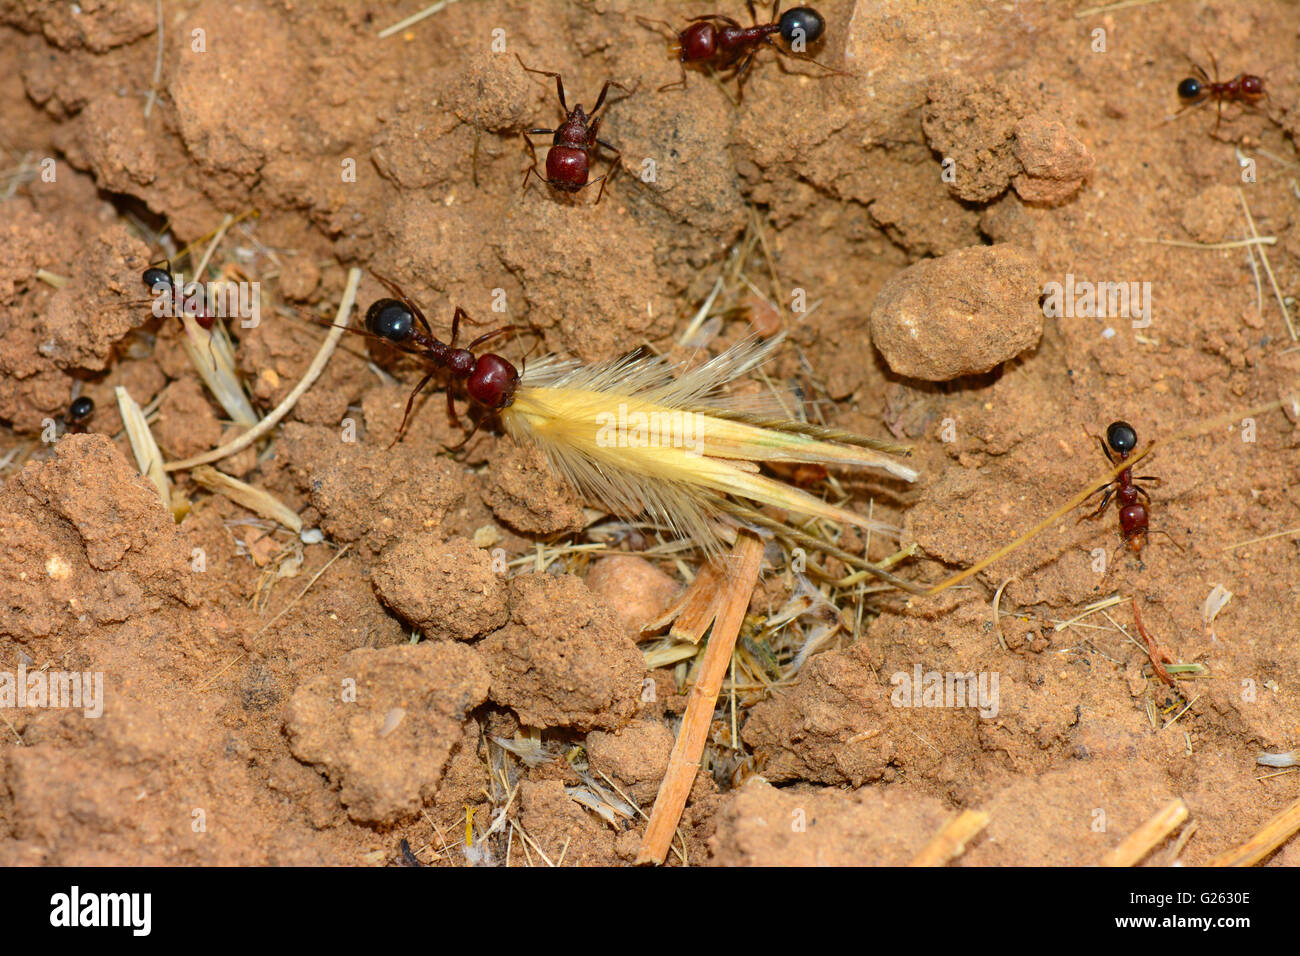 Ants collect food - Stock Image